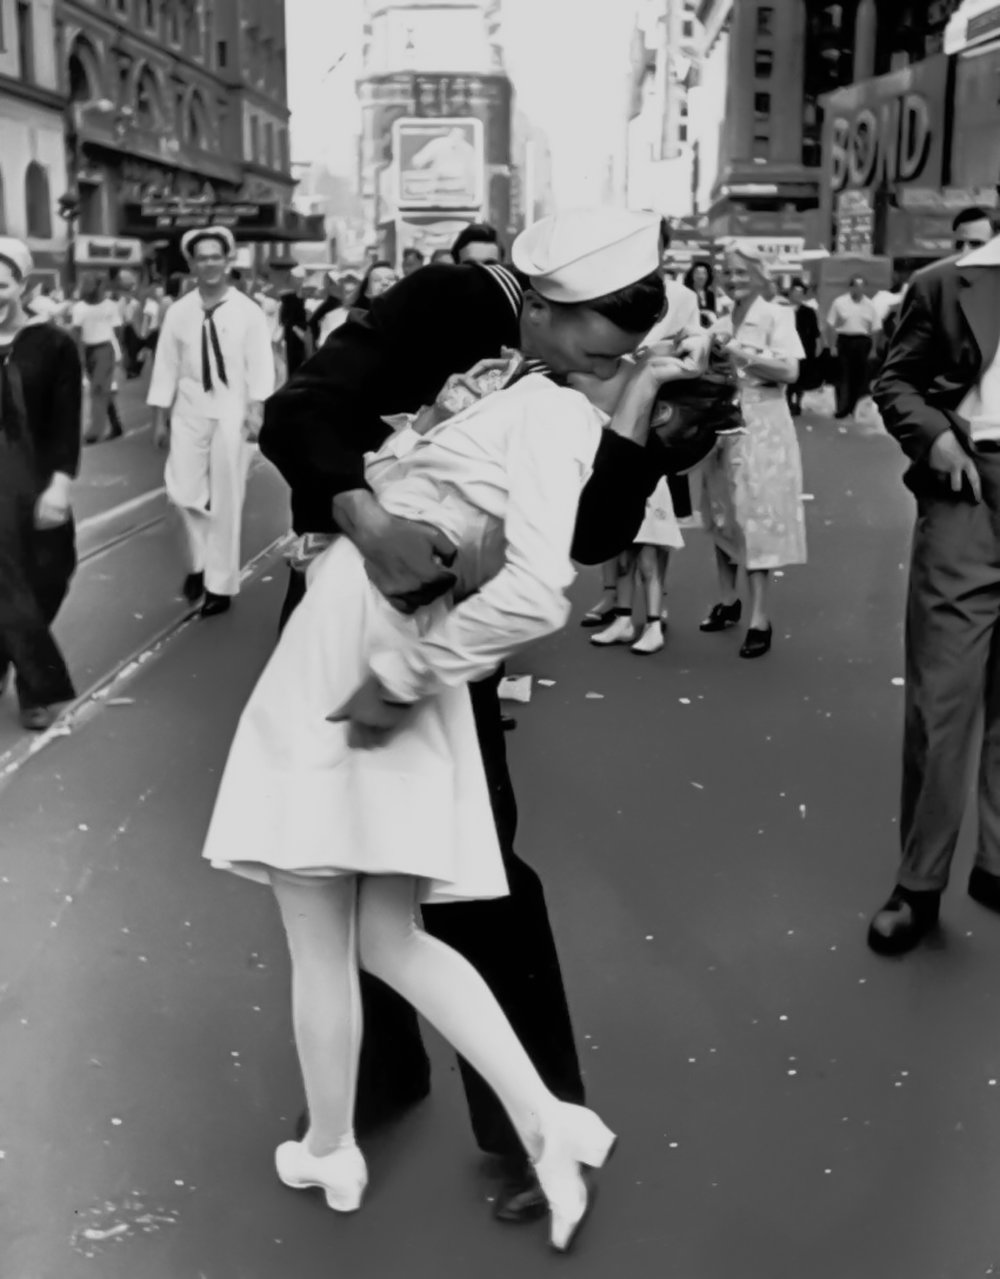 A sailor sweeps a nurse off her feet with a kiss in New York's Times Square in this famous photograph taken by Alfred Eisenstaedt on the day Japan surrendered to end World War II. (AP Photo/copyright-Alfred Eisenstaedt/Life Magazine)